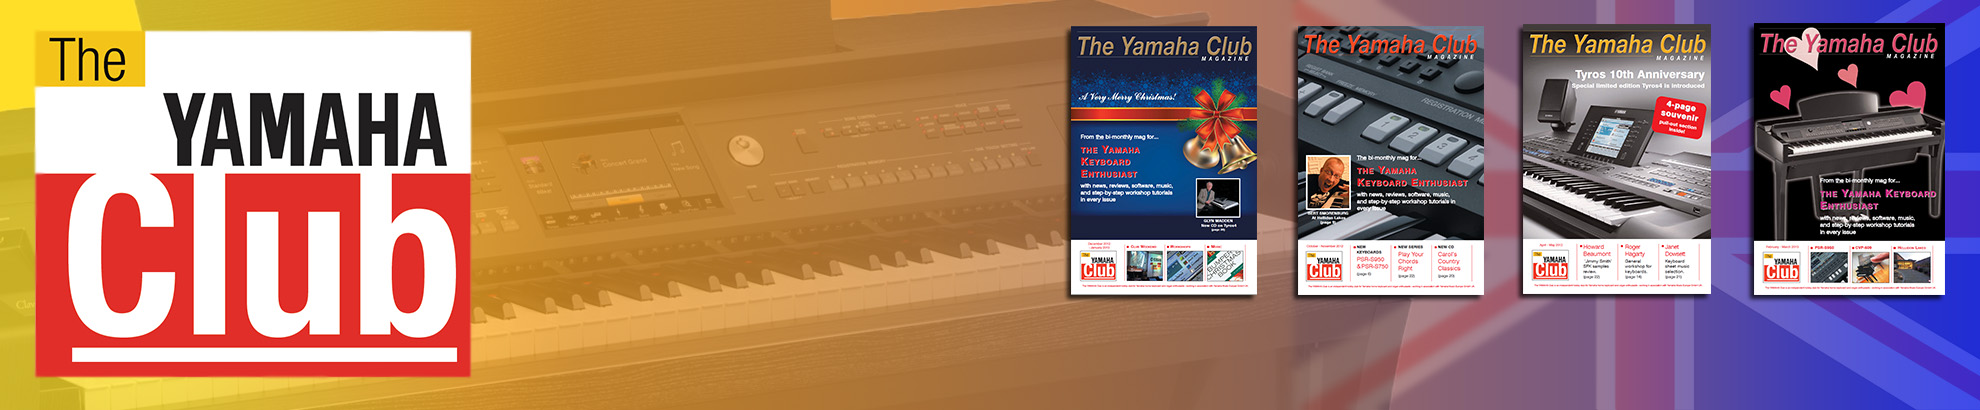 The Yamaha Club